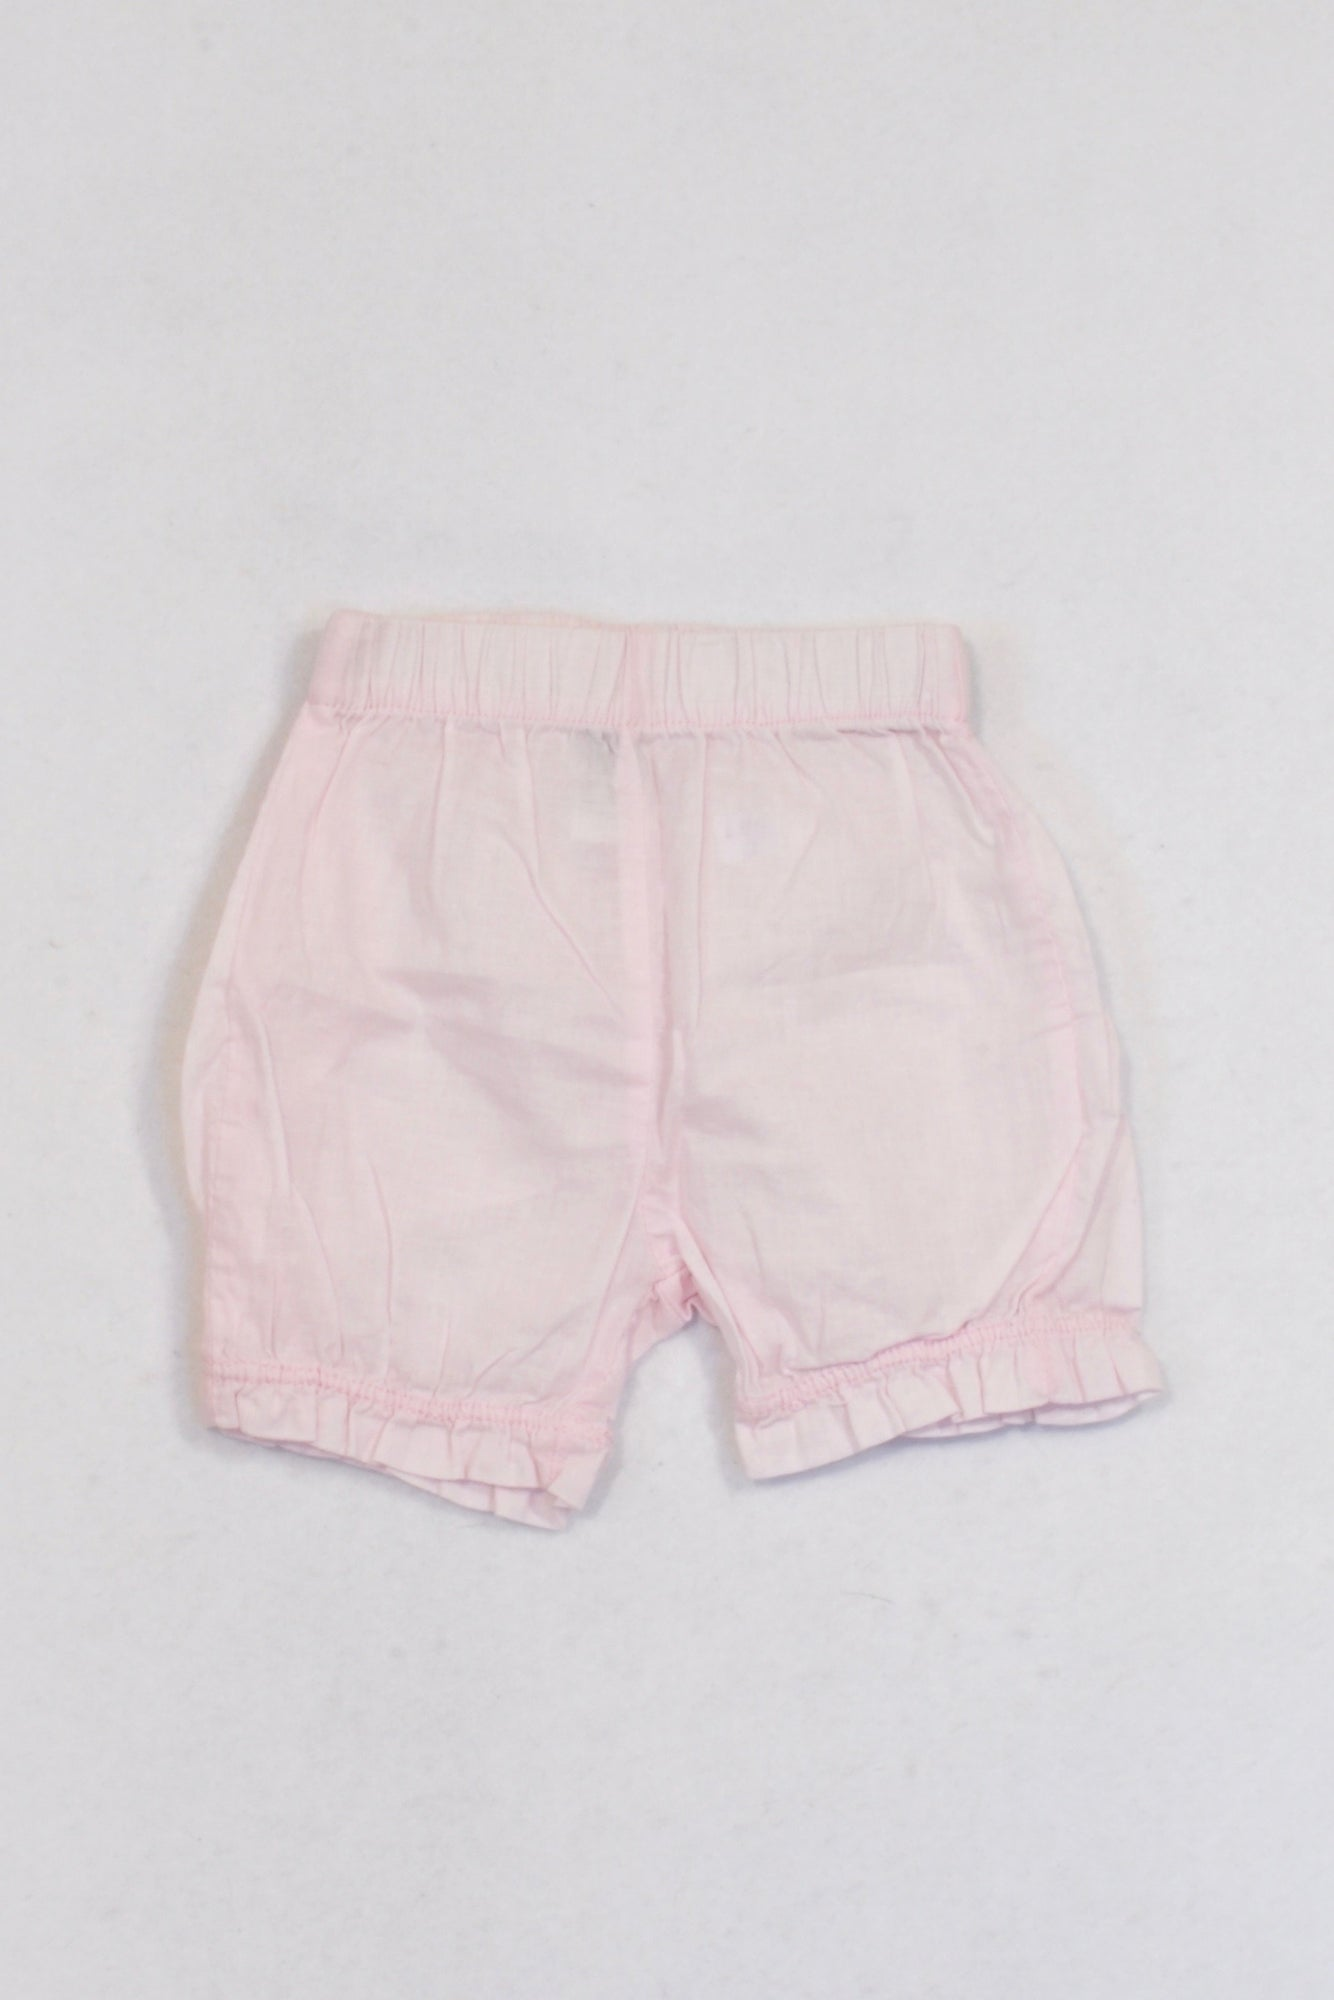 Ackermans Pale Pink Ruffle Bubble Bloomers Girls 0-3 months